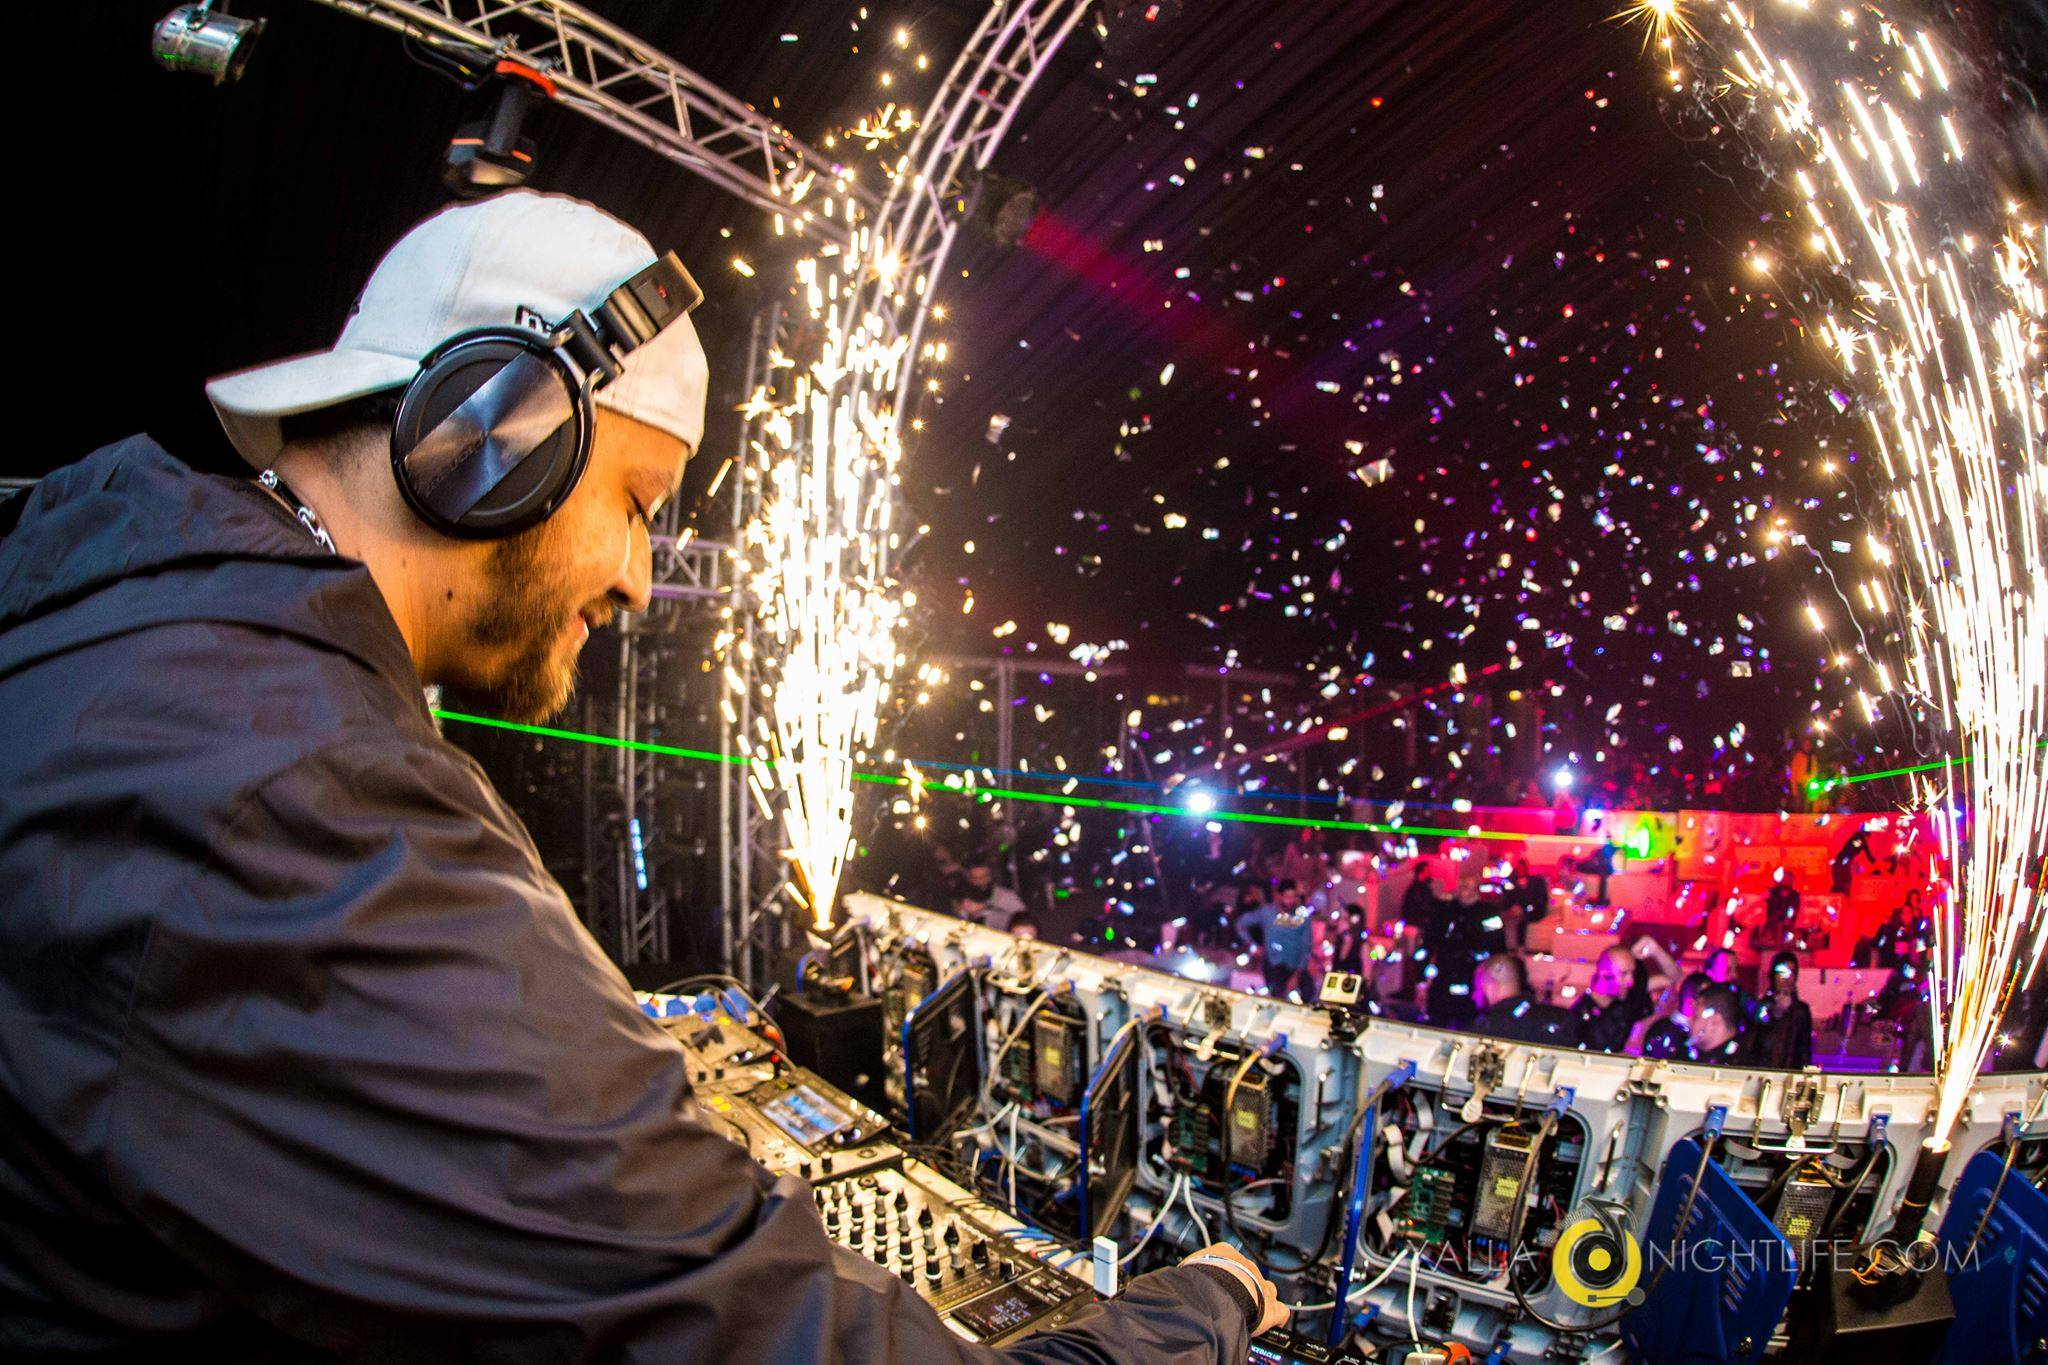 download → Hisham Yahia - Tech Life May Promo Mix 2018 - 18-May-2018